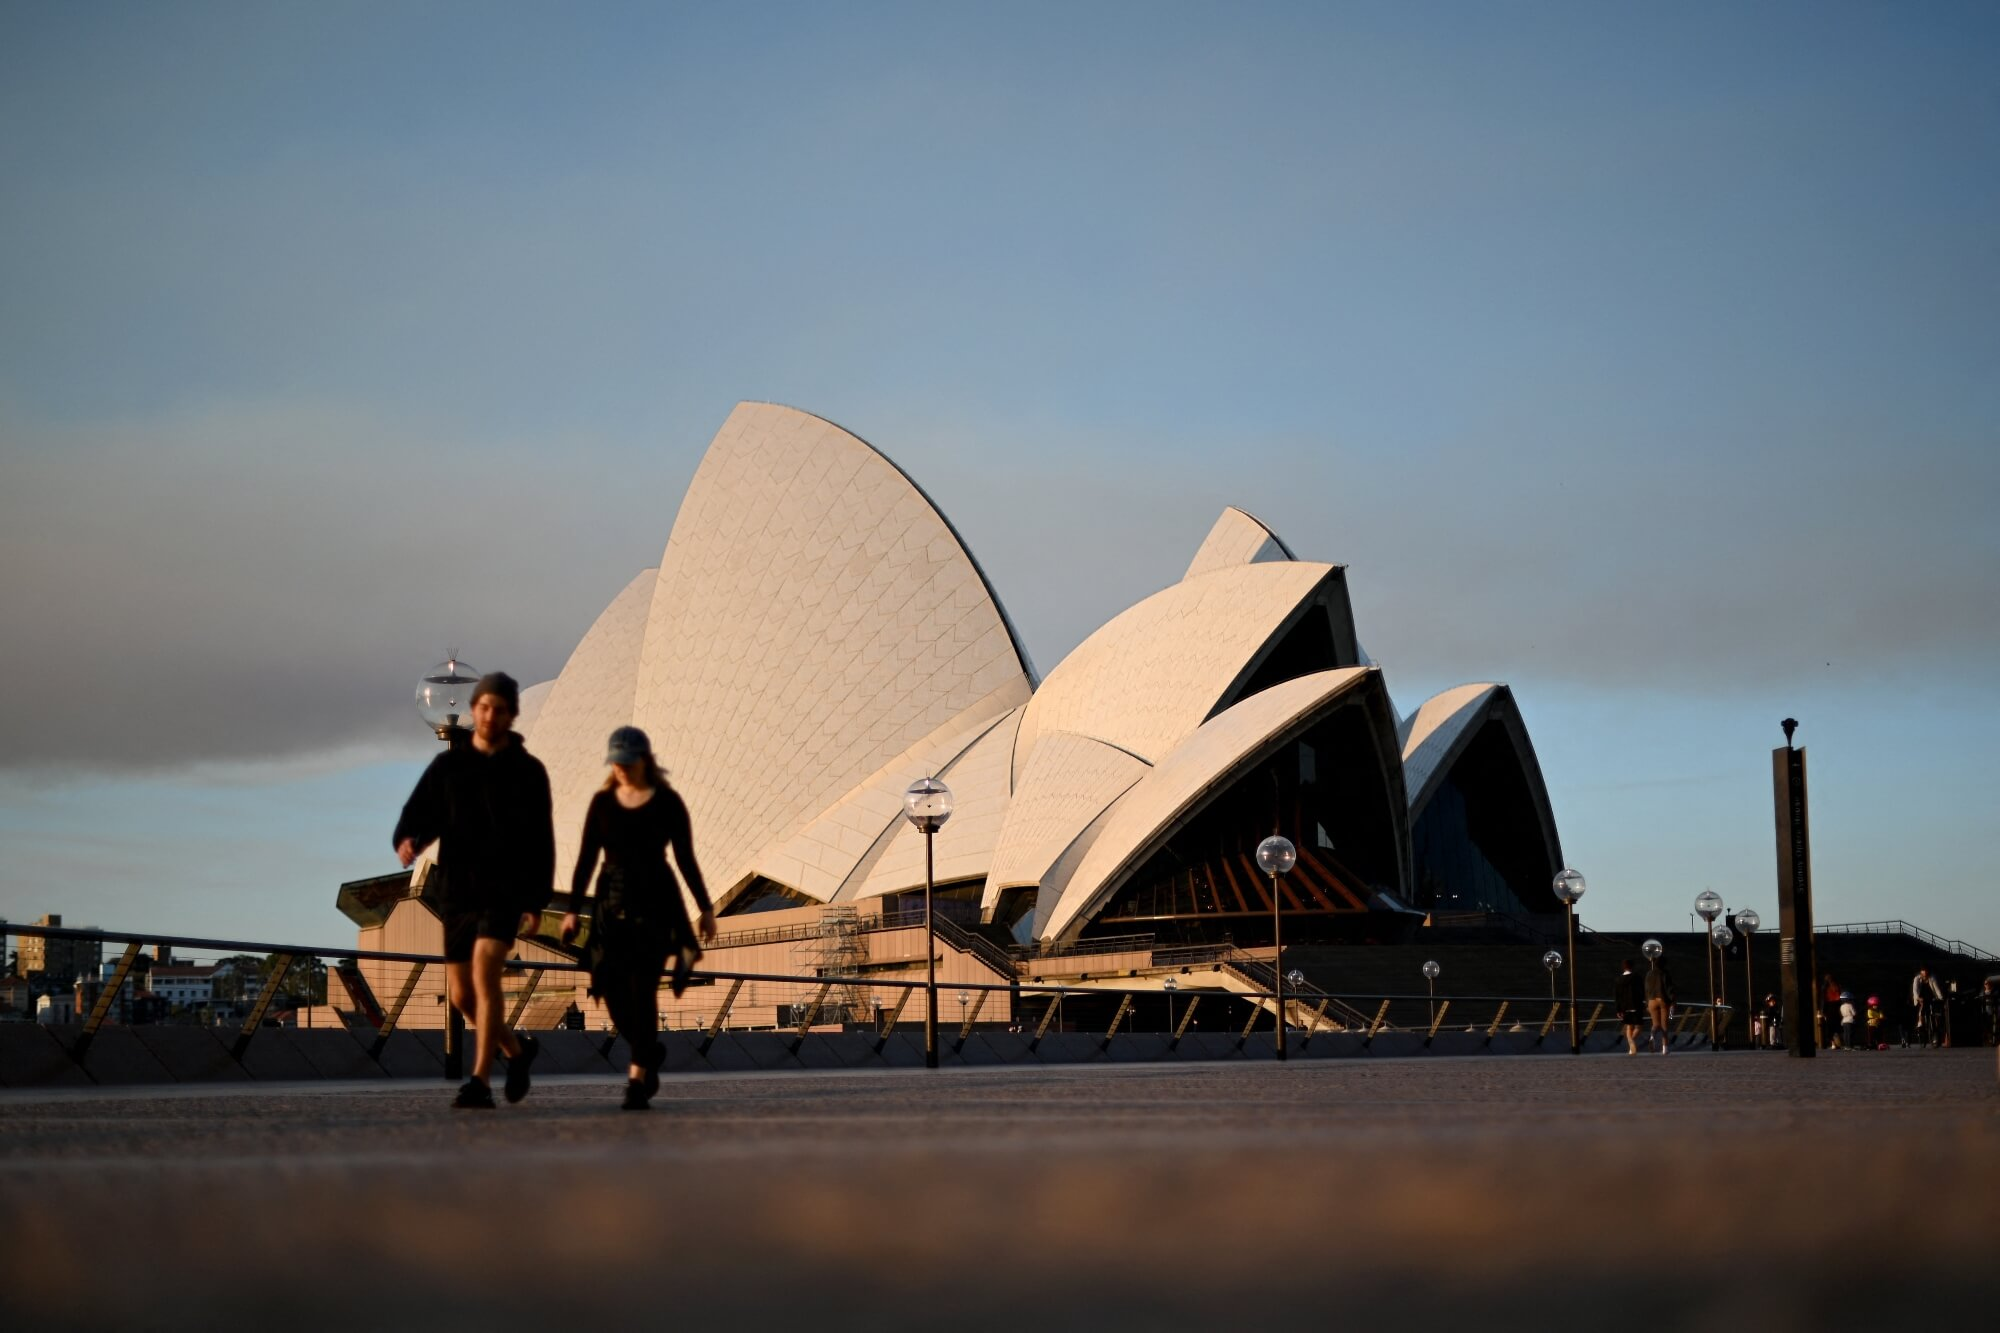 'Steady decline' in interest in Australia, particularly from Indian students: expert